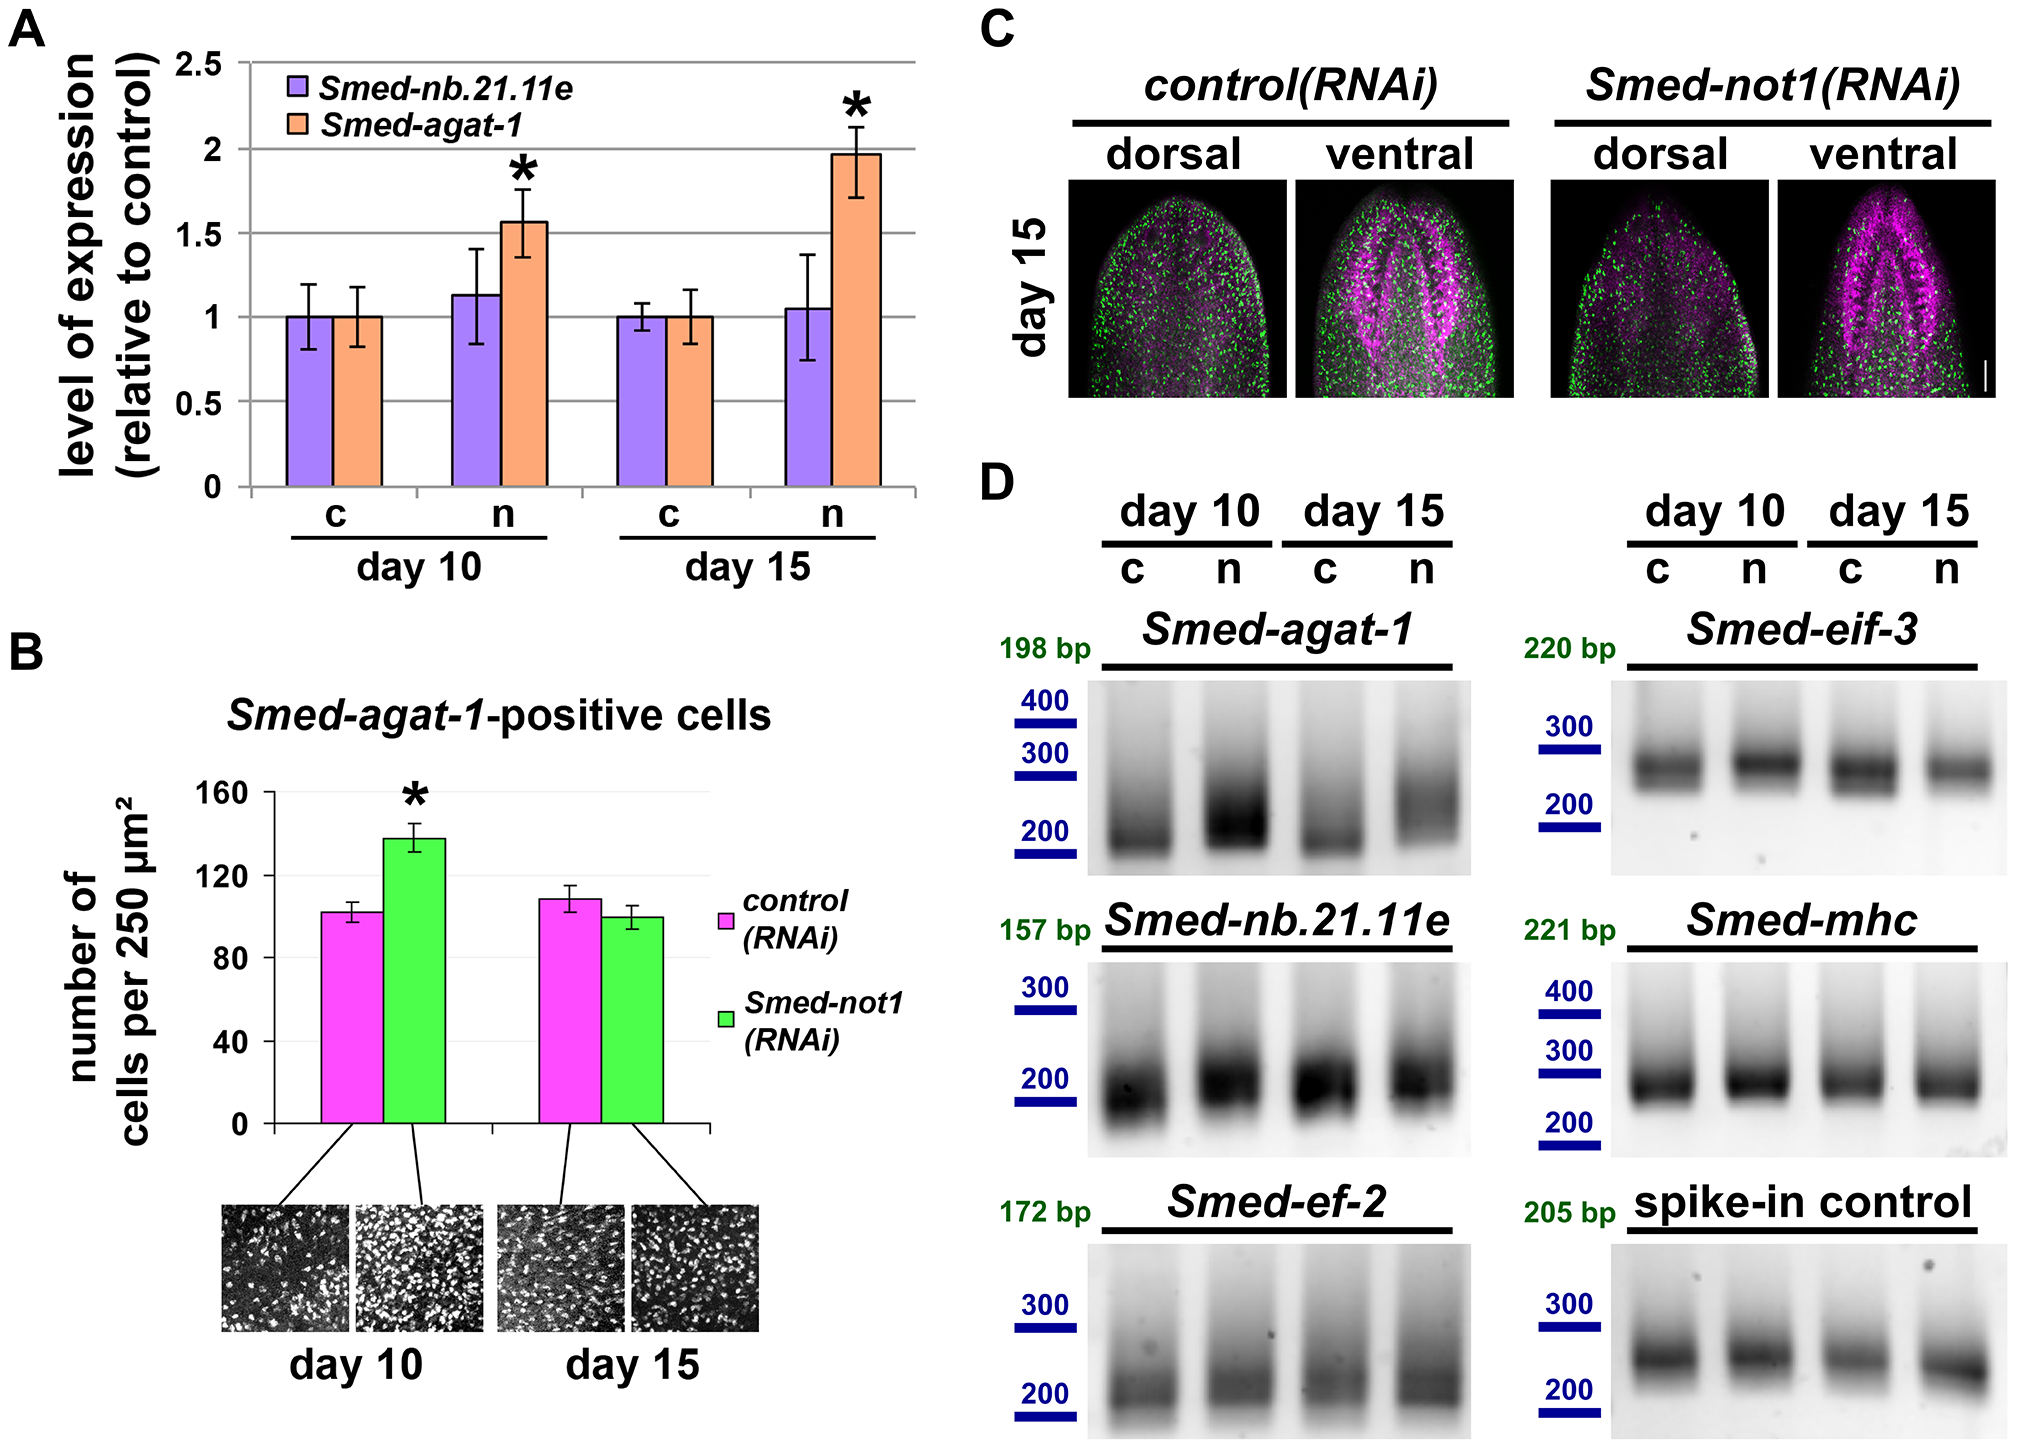 <i>Smed-not1(RNAi)</i> animals have increasing numbers of <i>Smed-agat-1</i> transcripts with increased frequency of long poly(A) tails but decreasing numbers of <i>Smed-agat-1</i>-positive cells.